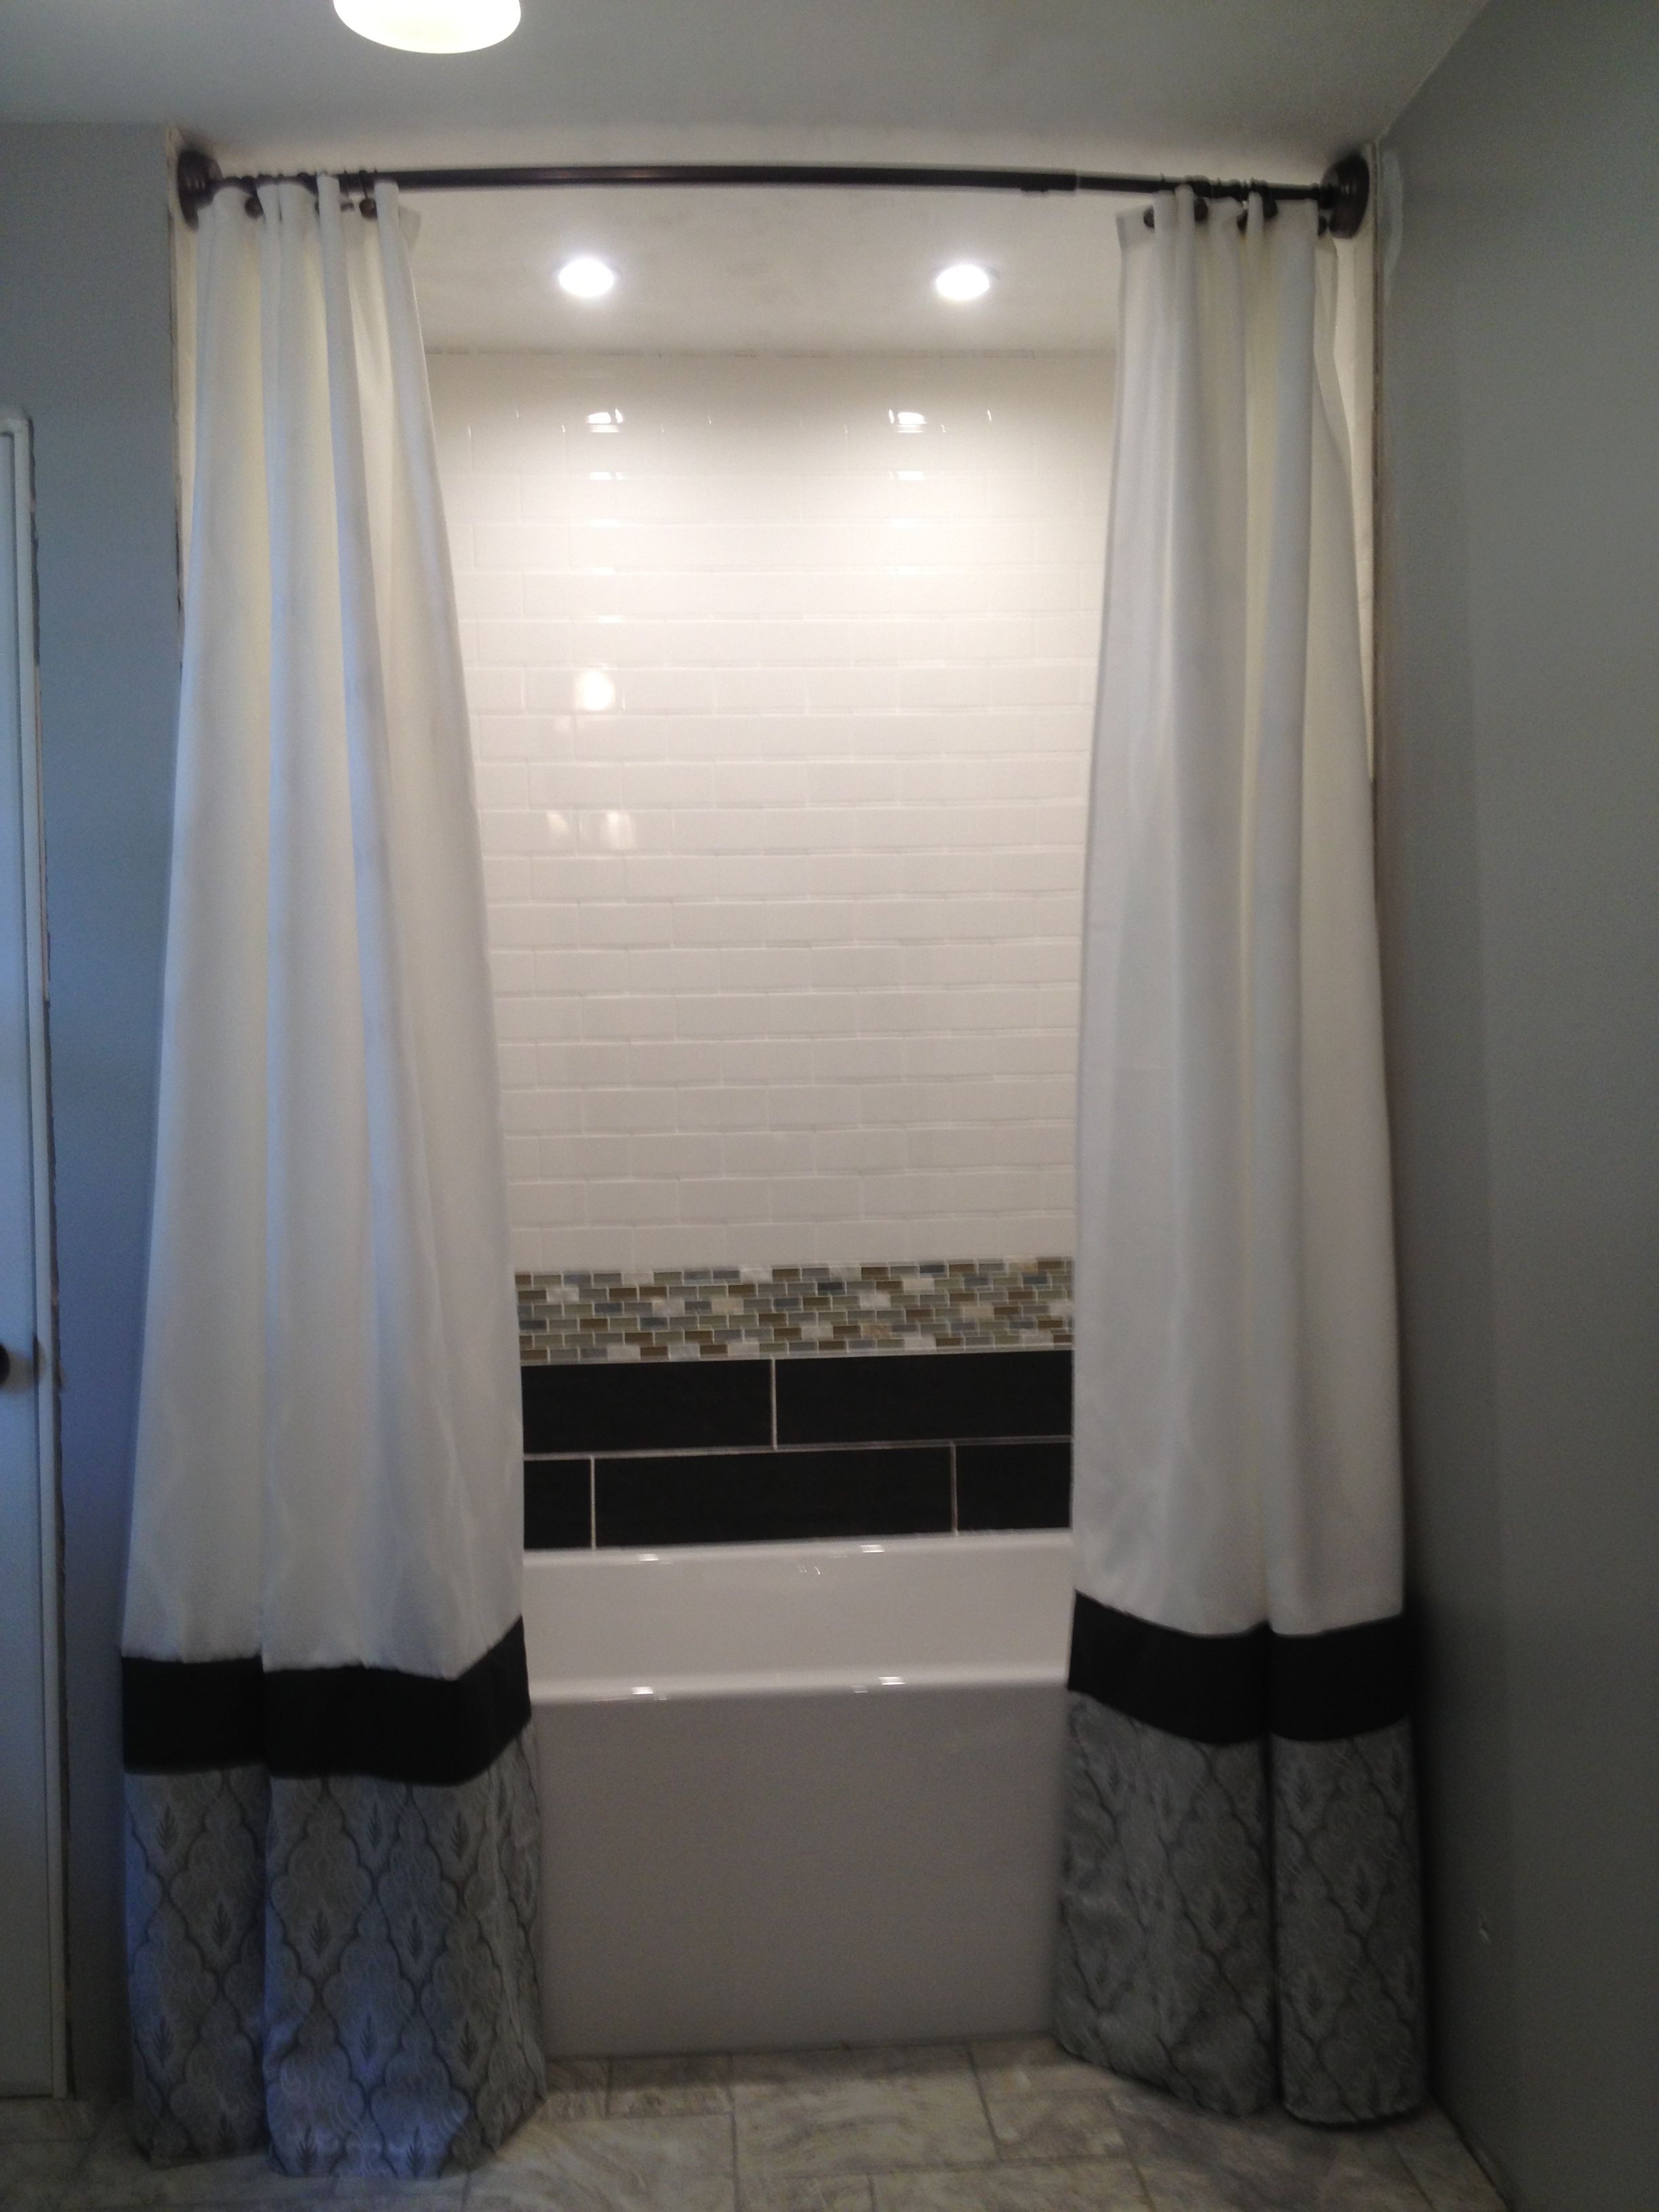 Floor to ceiling shower curtains | Completed Pinspirations!